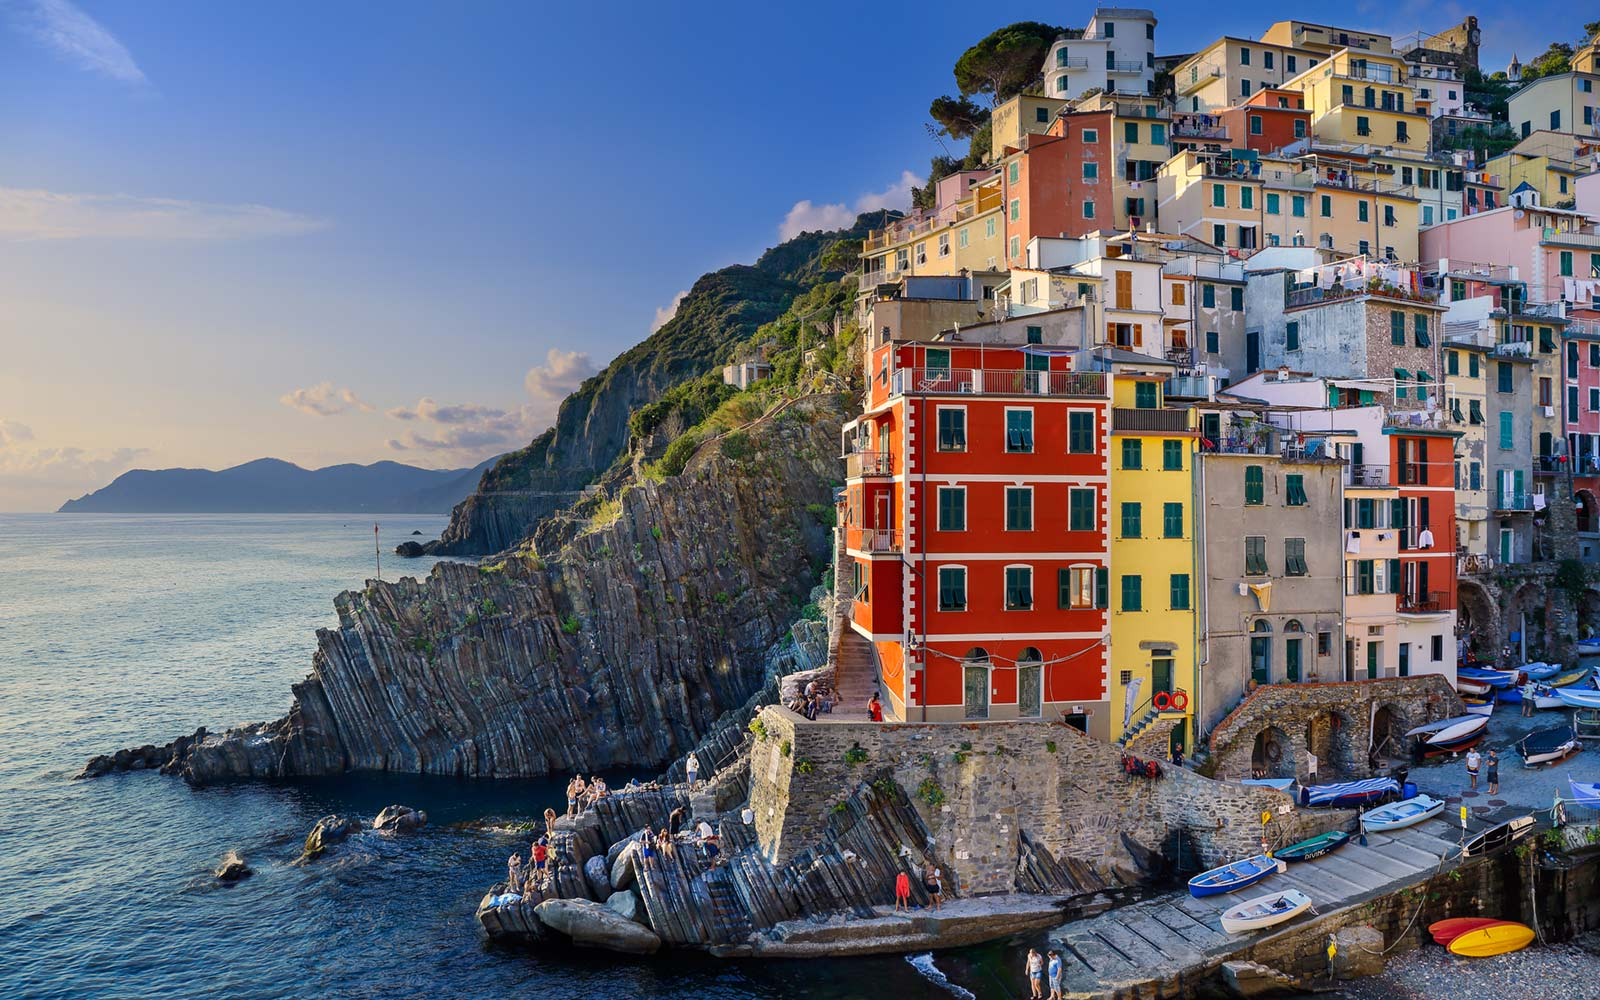 How to Travel to Cinque Terre